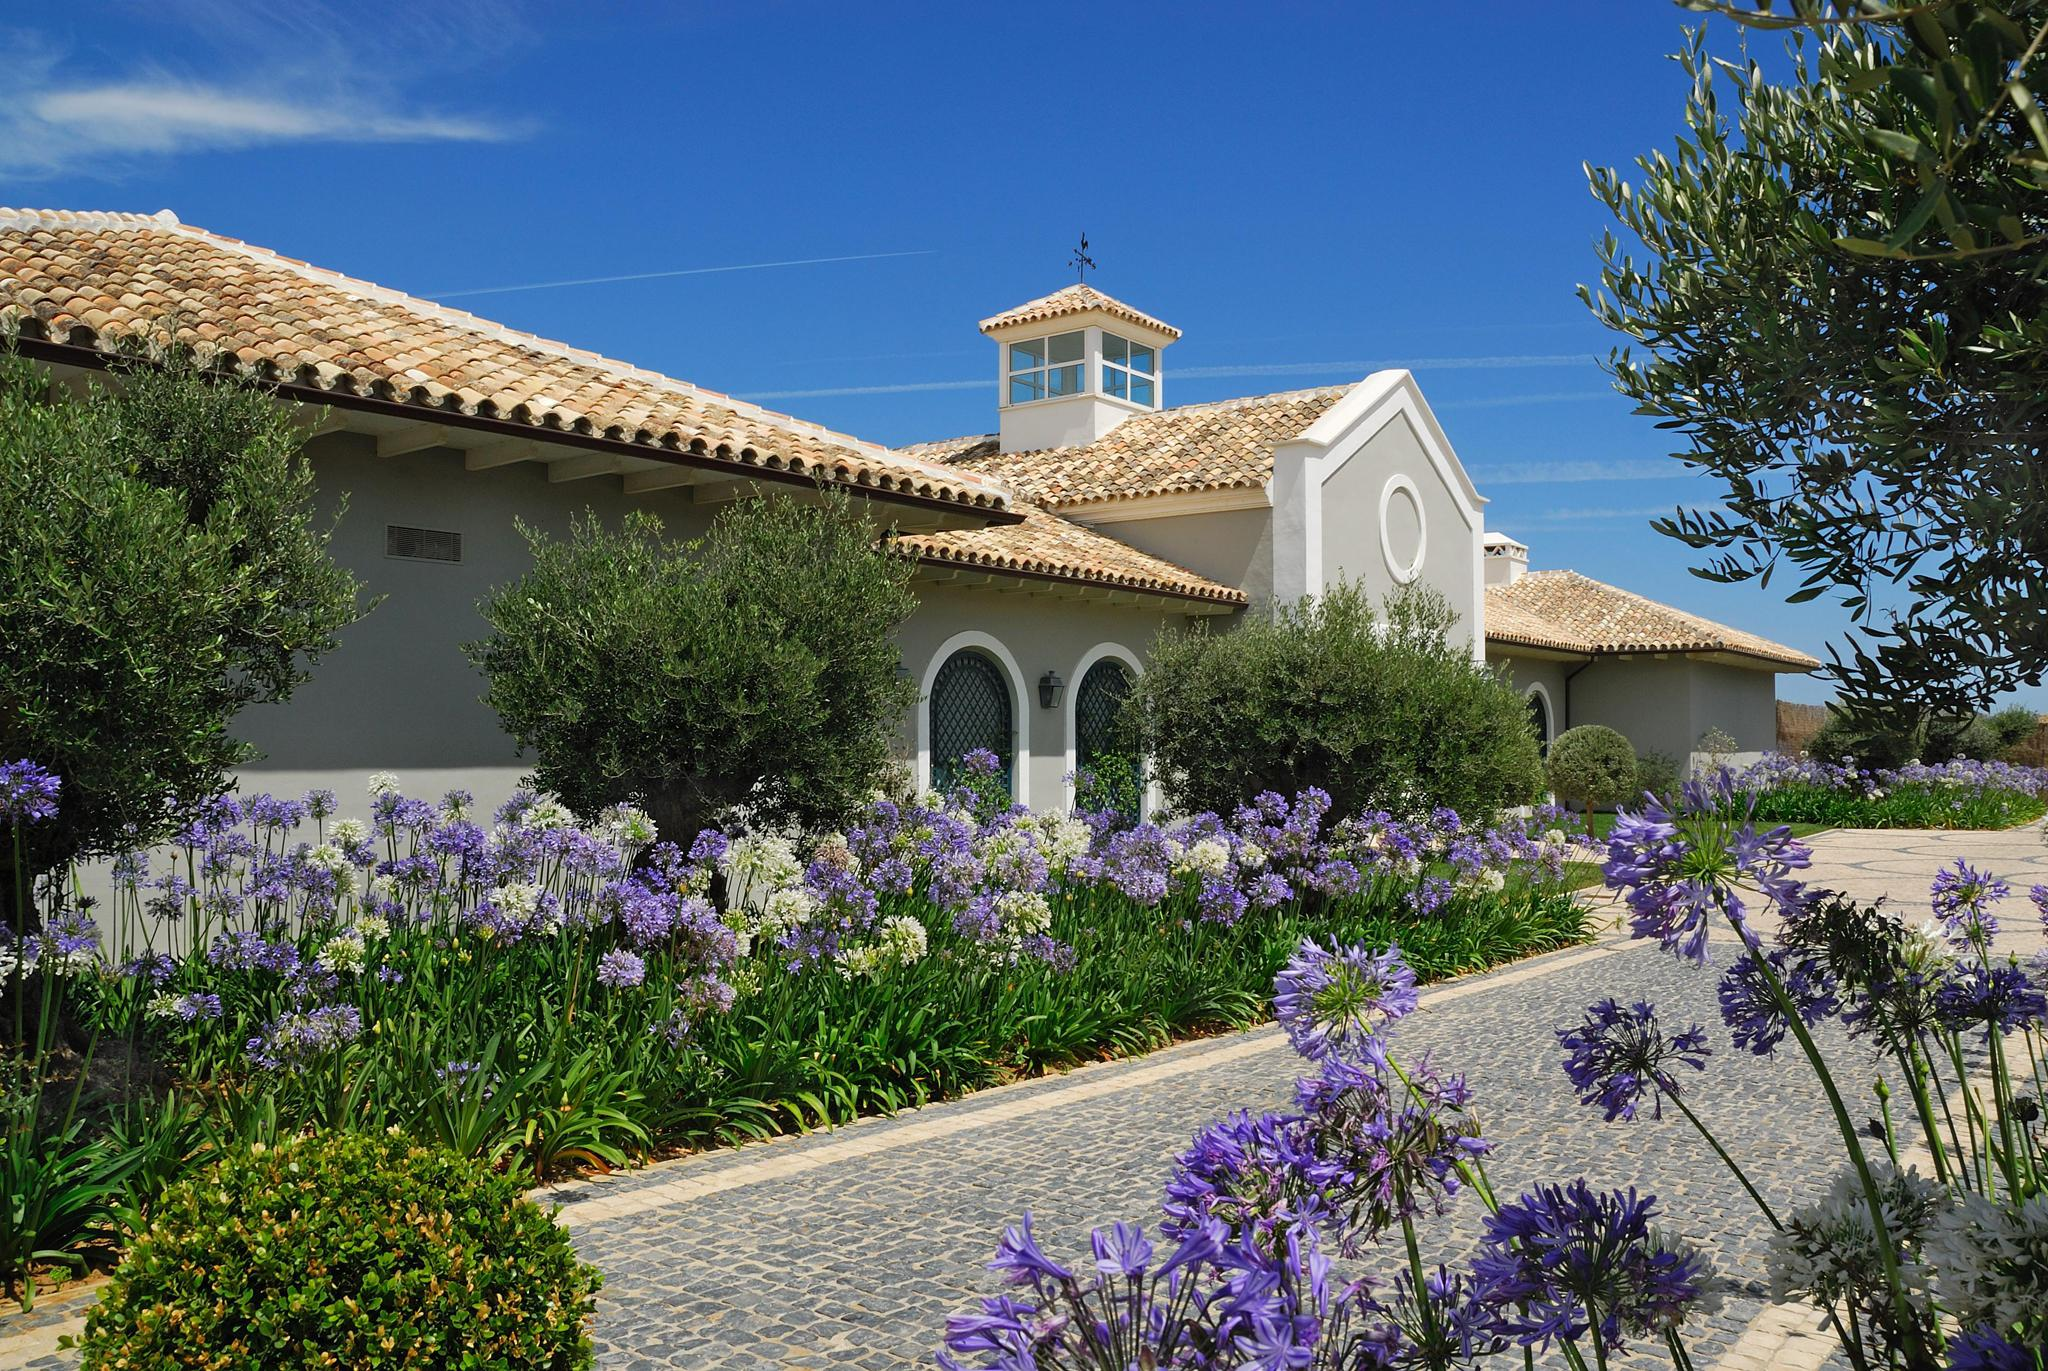 Finca Cortesin, A 215 Hectare Estate Offering An Intimate And Sophisticated Atmosphere